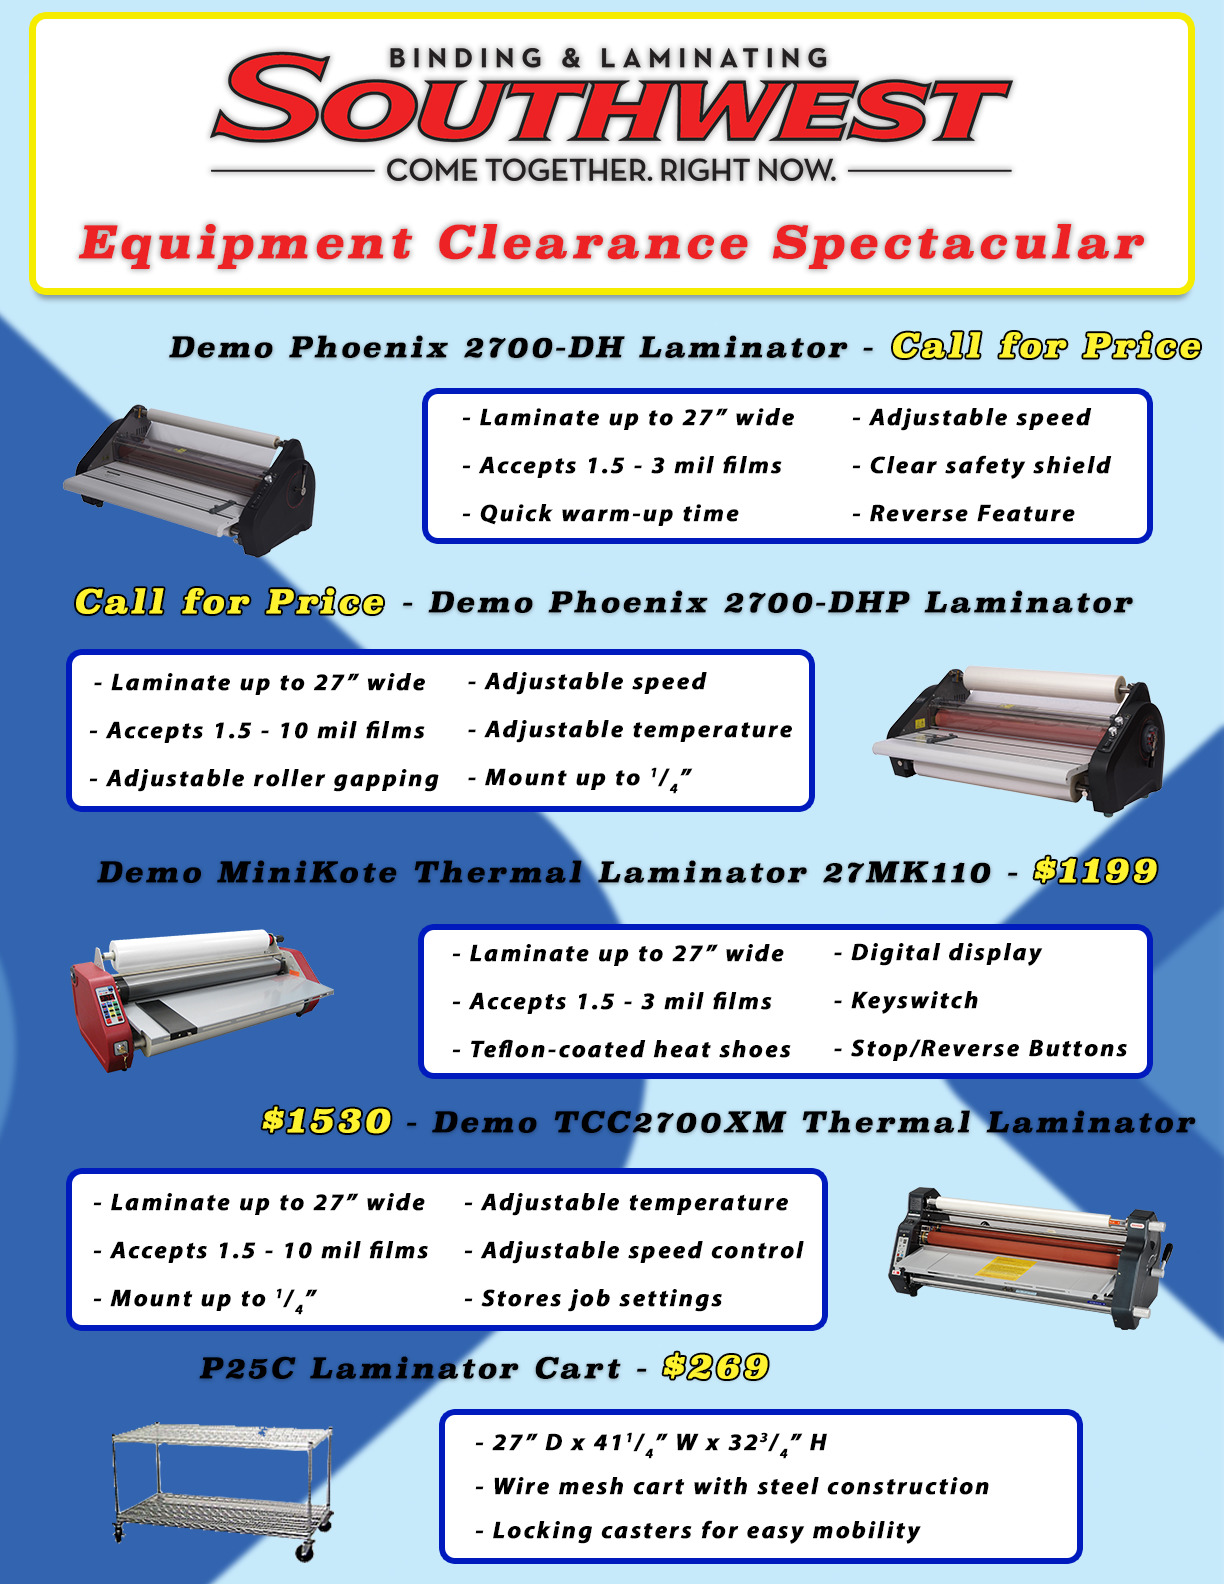 Equipment Clearance Spectacular